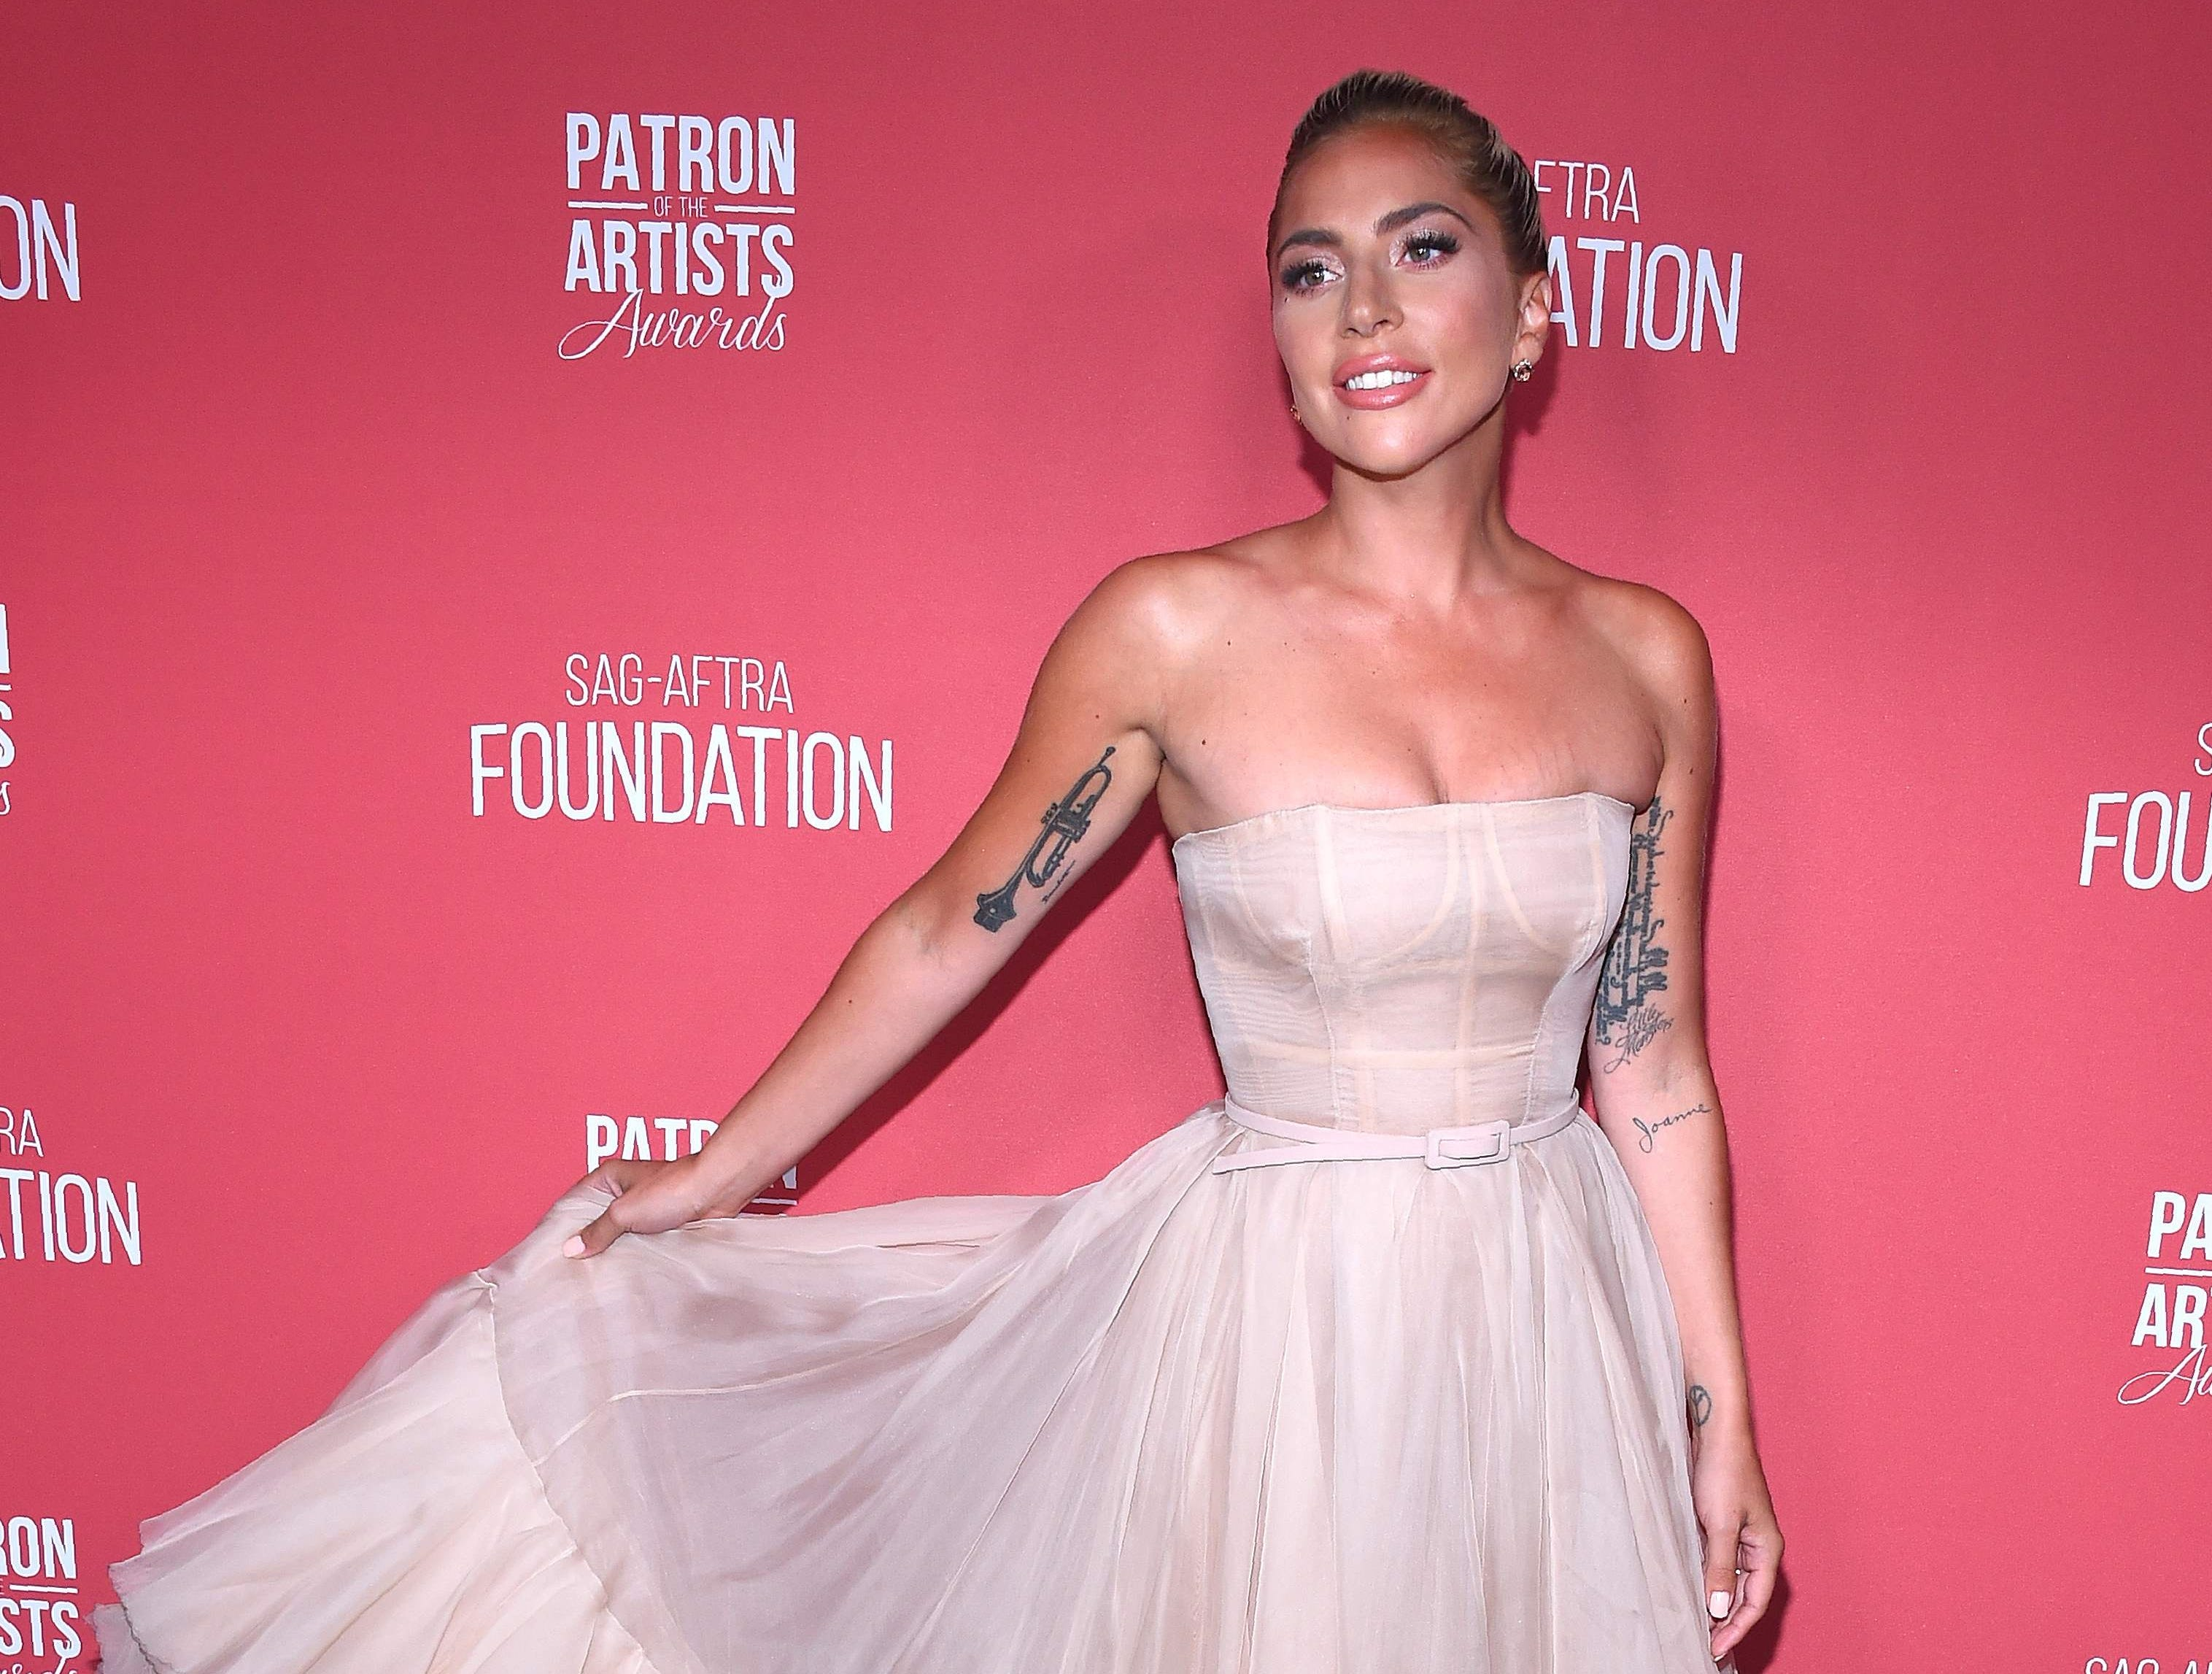 Singer/actress Lady Gaga attends the The SAG-AFTRA Foundation 3rd Patron of the Artists Awards in Los Angeles, California, on November 8, 2018. (Photo by LISA O'CONNOR / AFP)LISA O'CONNOR/AFP/Getty Images ORG XMIT: The SAG-A ORIG FILE ID: AFP_1AP1PE